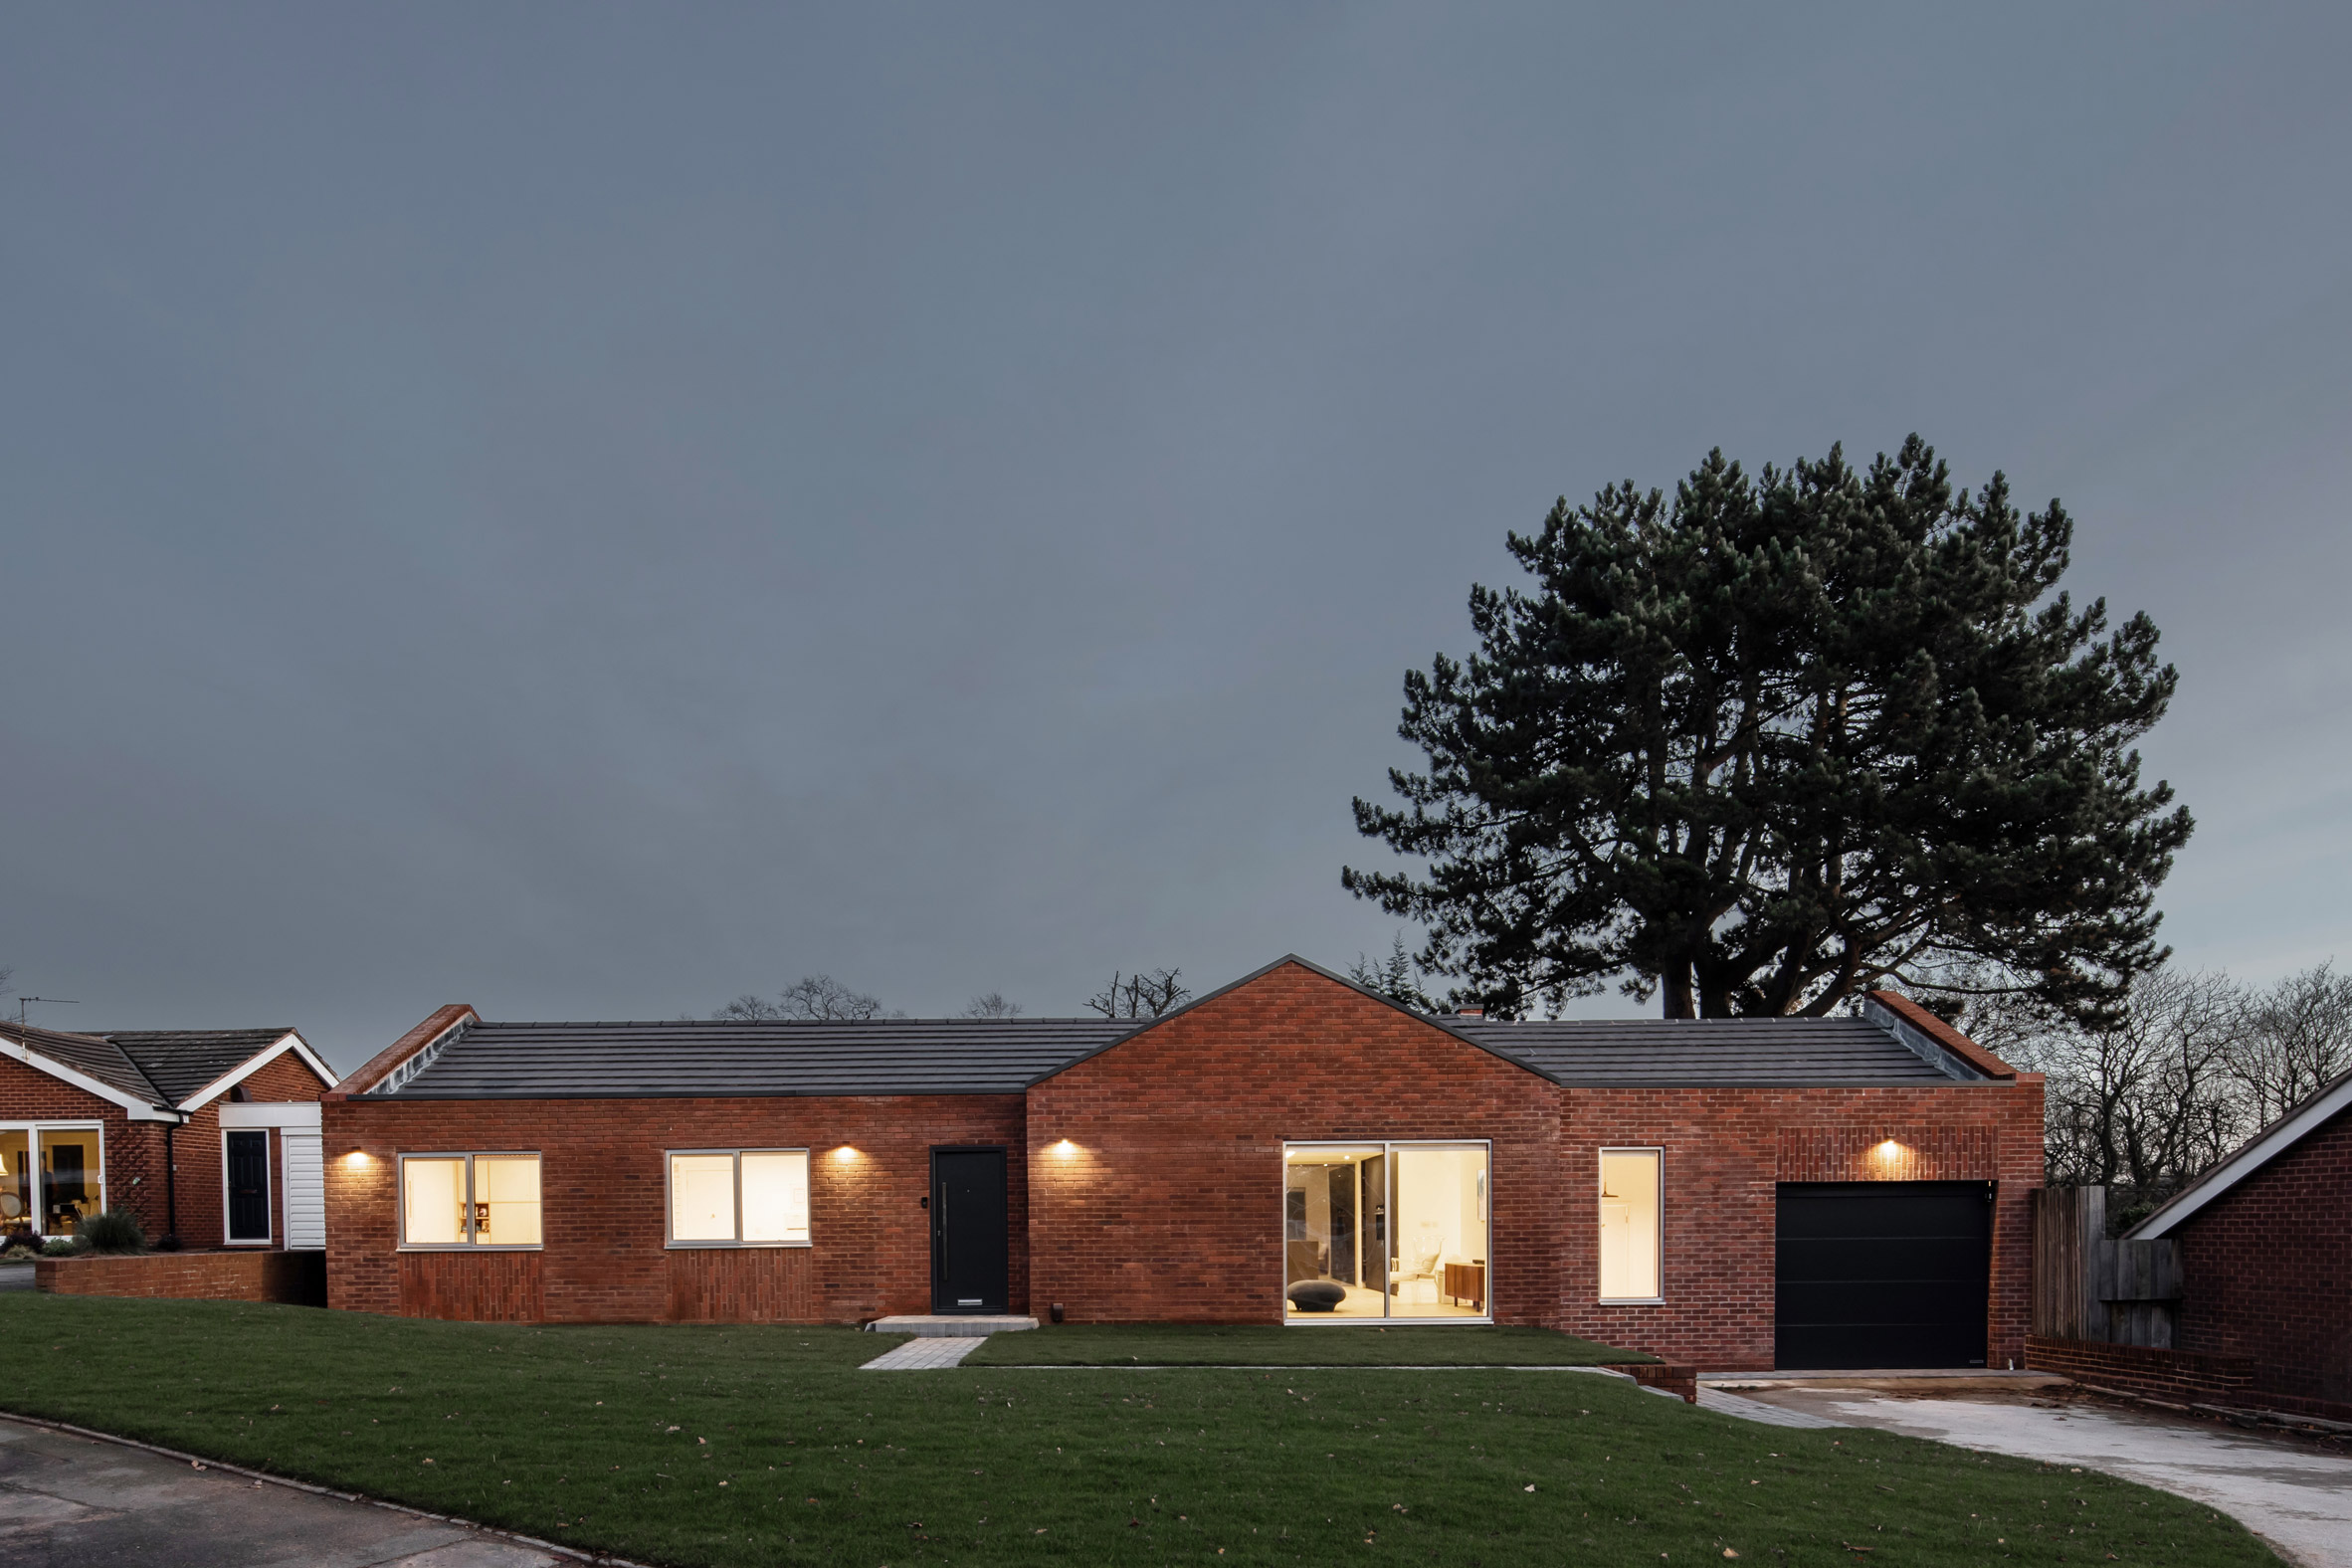 Facade of Honey and Walnut House renovated bungalow by Intervention Architecture